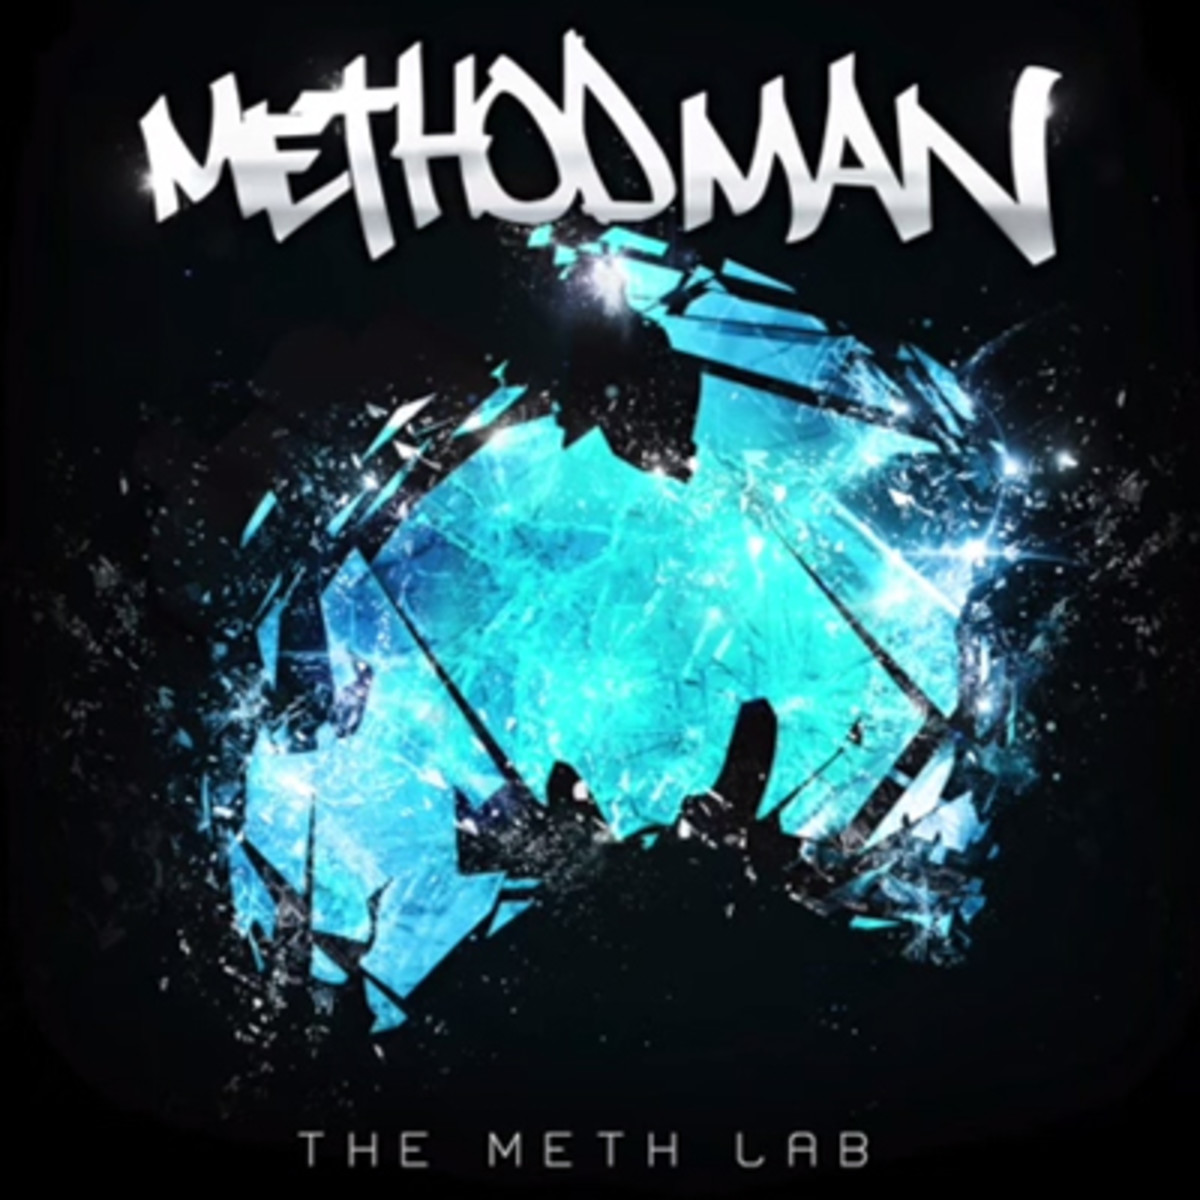 method-man-the-meth-lab-2.jpg